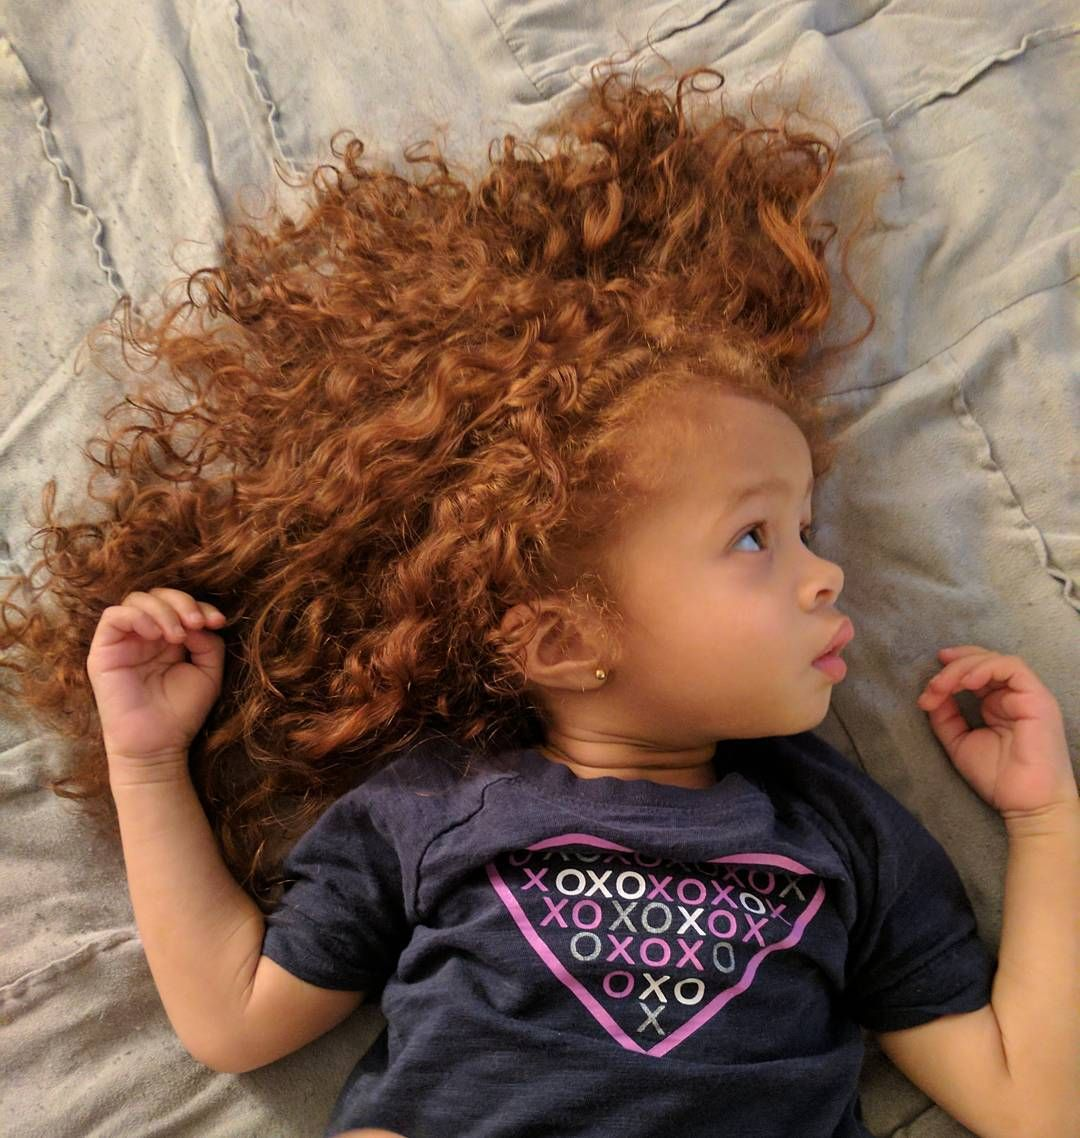 Pin By Tomi Choyce On Reds  Pinterest  Bbs Mignons, Beaux Bbs And Bb Swag-8108